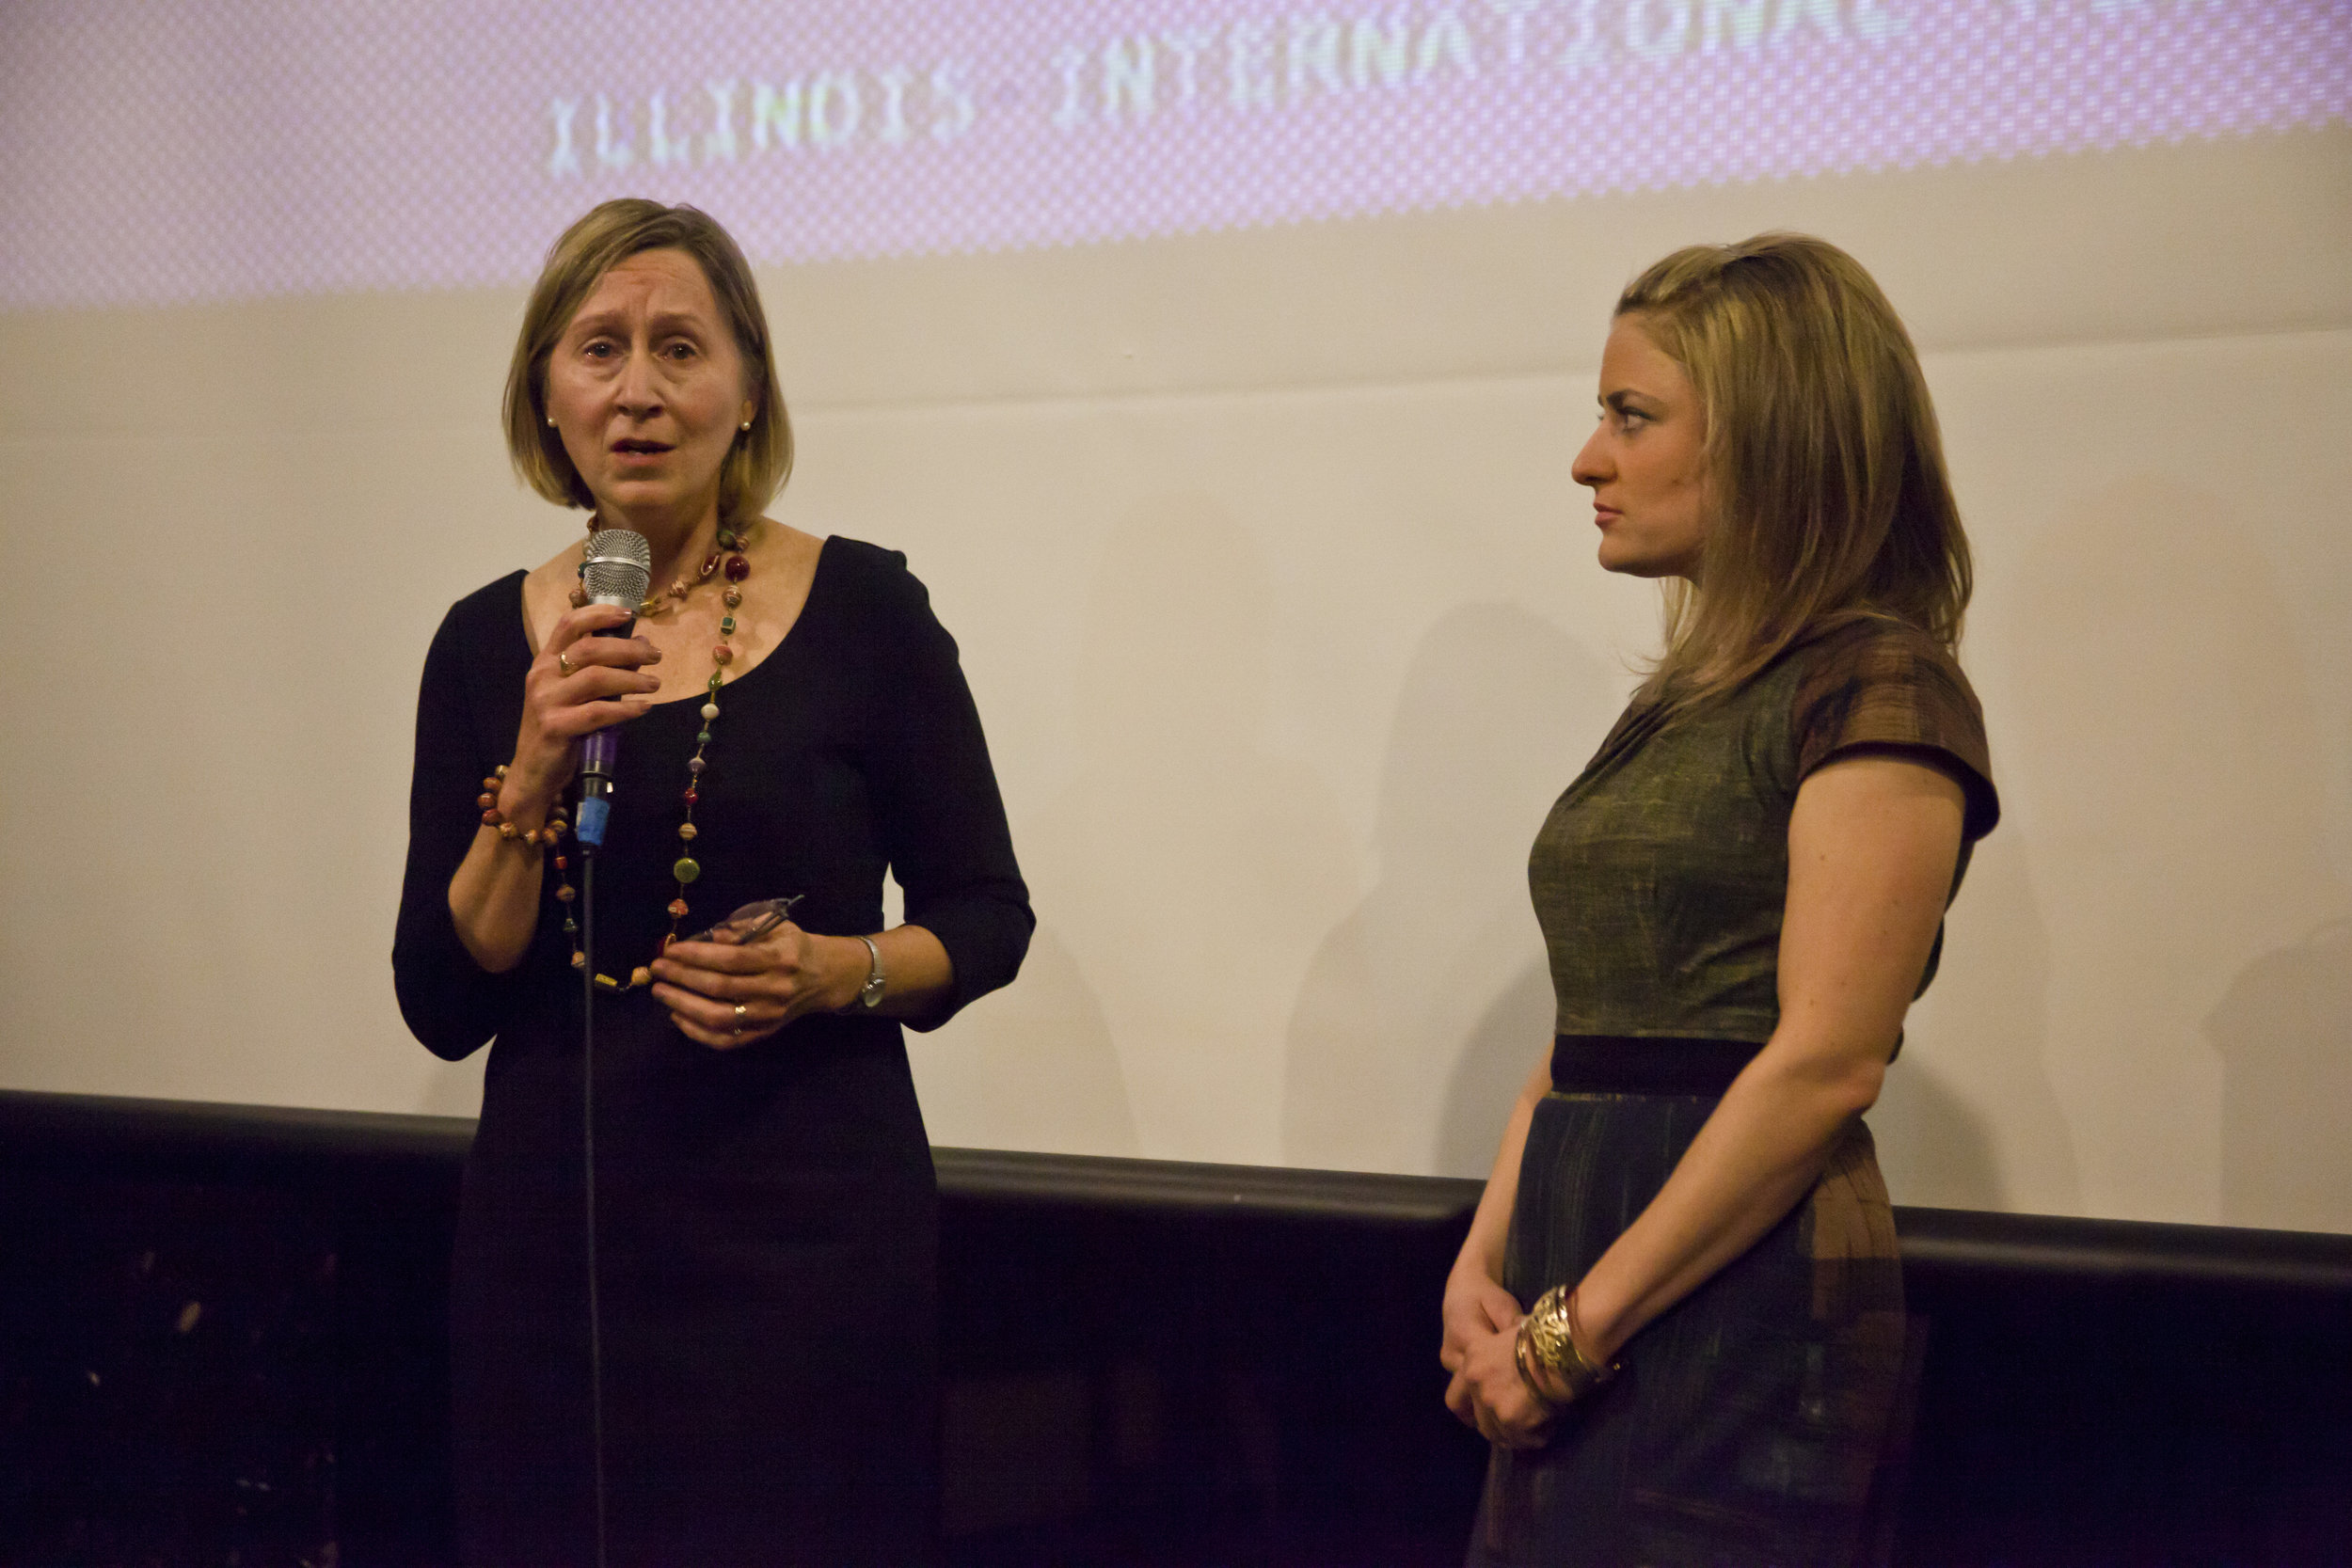 Q&A at Illinois International Film Festival